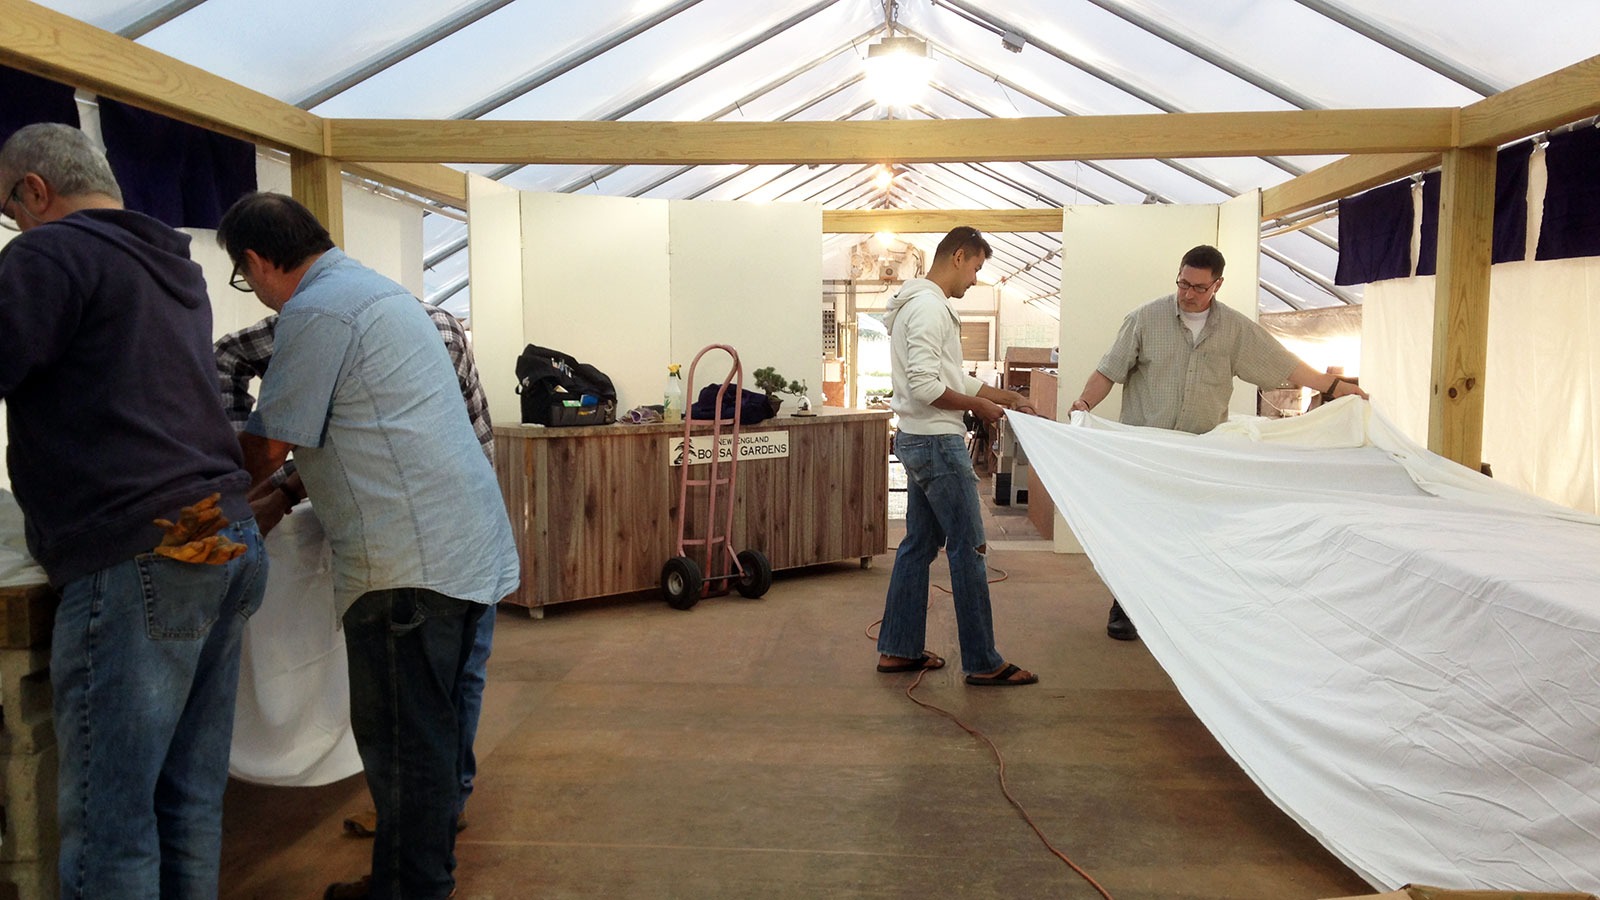 Jorge, John, Chau (that's me!), and Neil setting up tables and backdrop